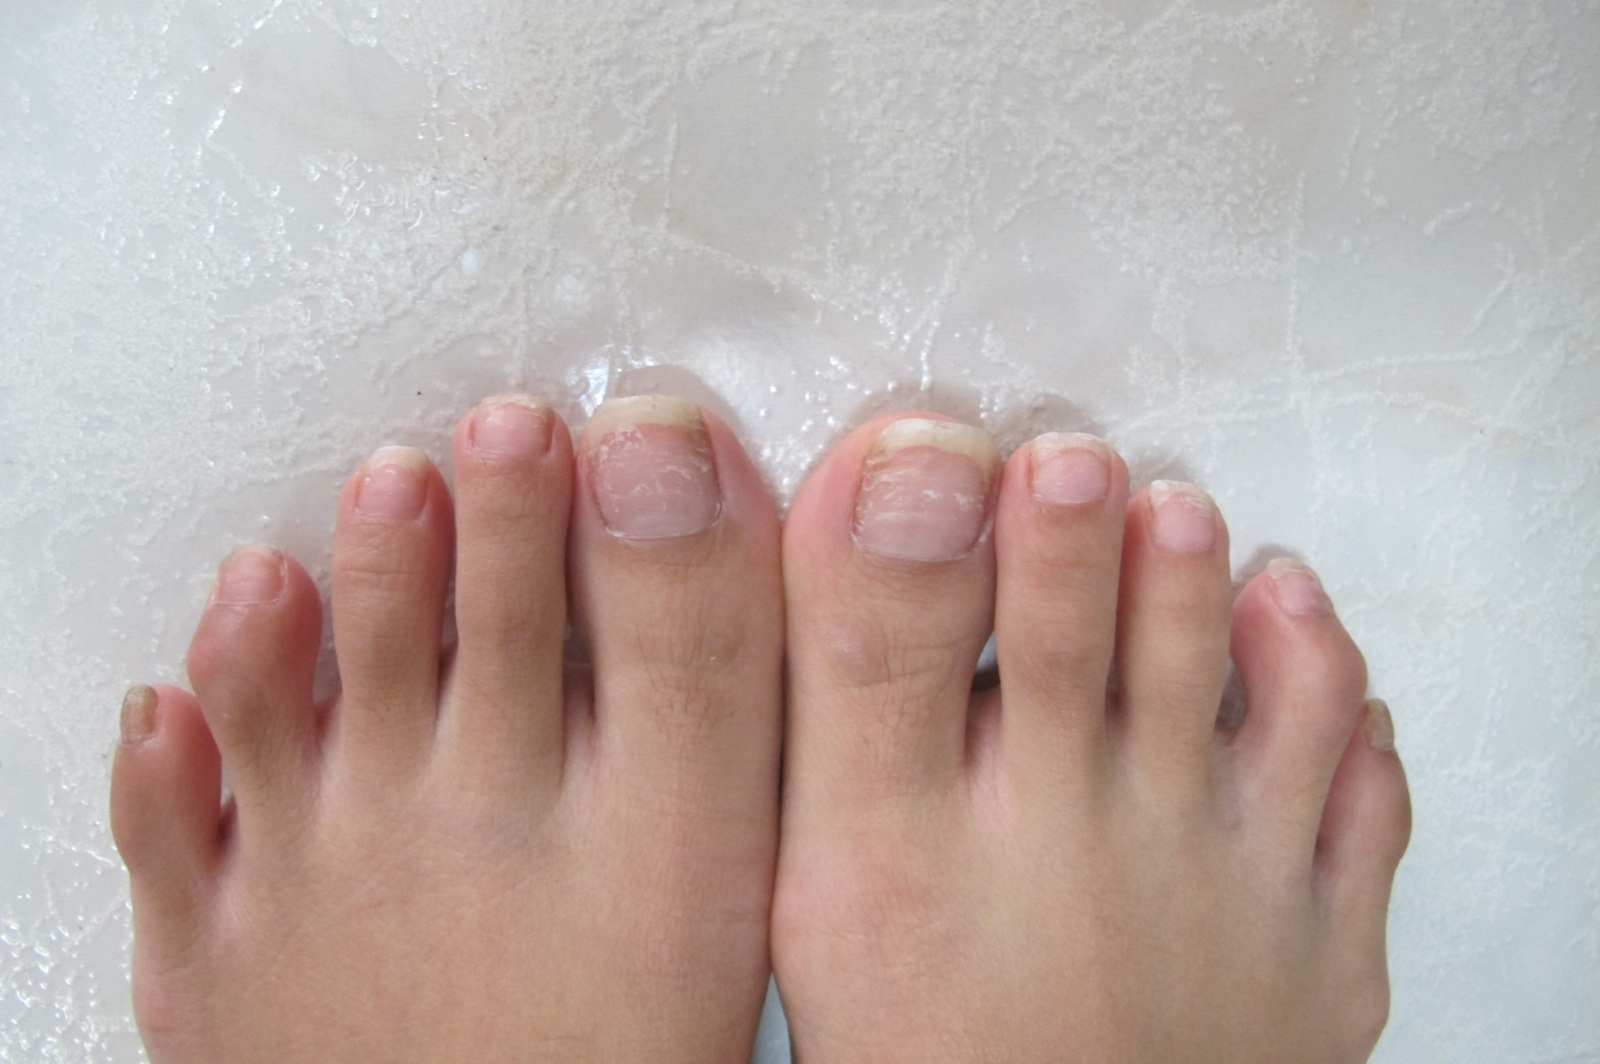 How to cure brittle nails | www.xiangtingk.com